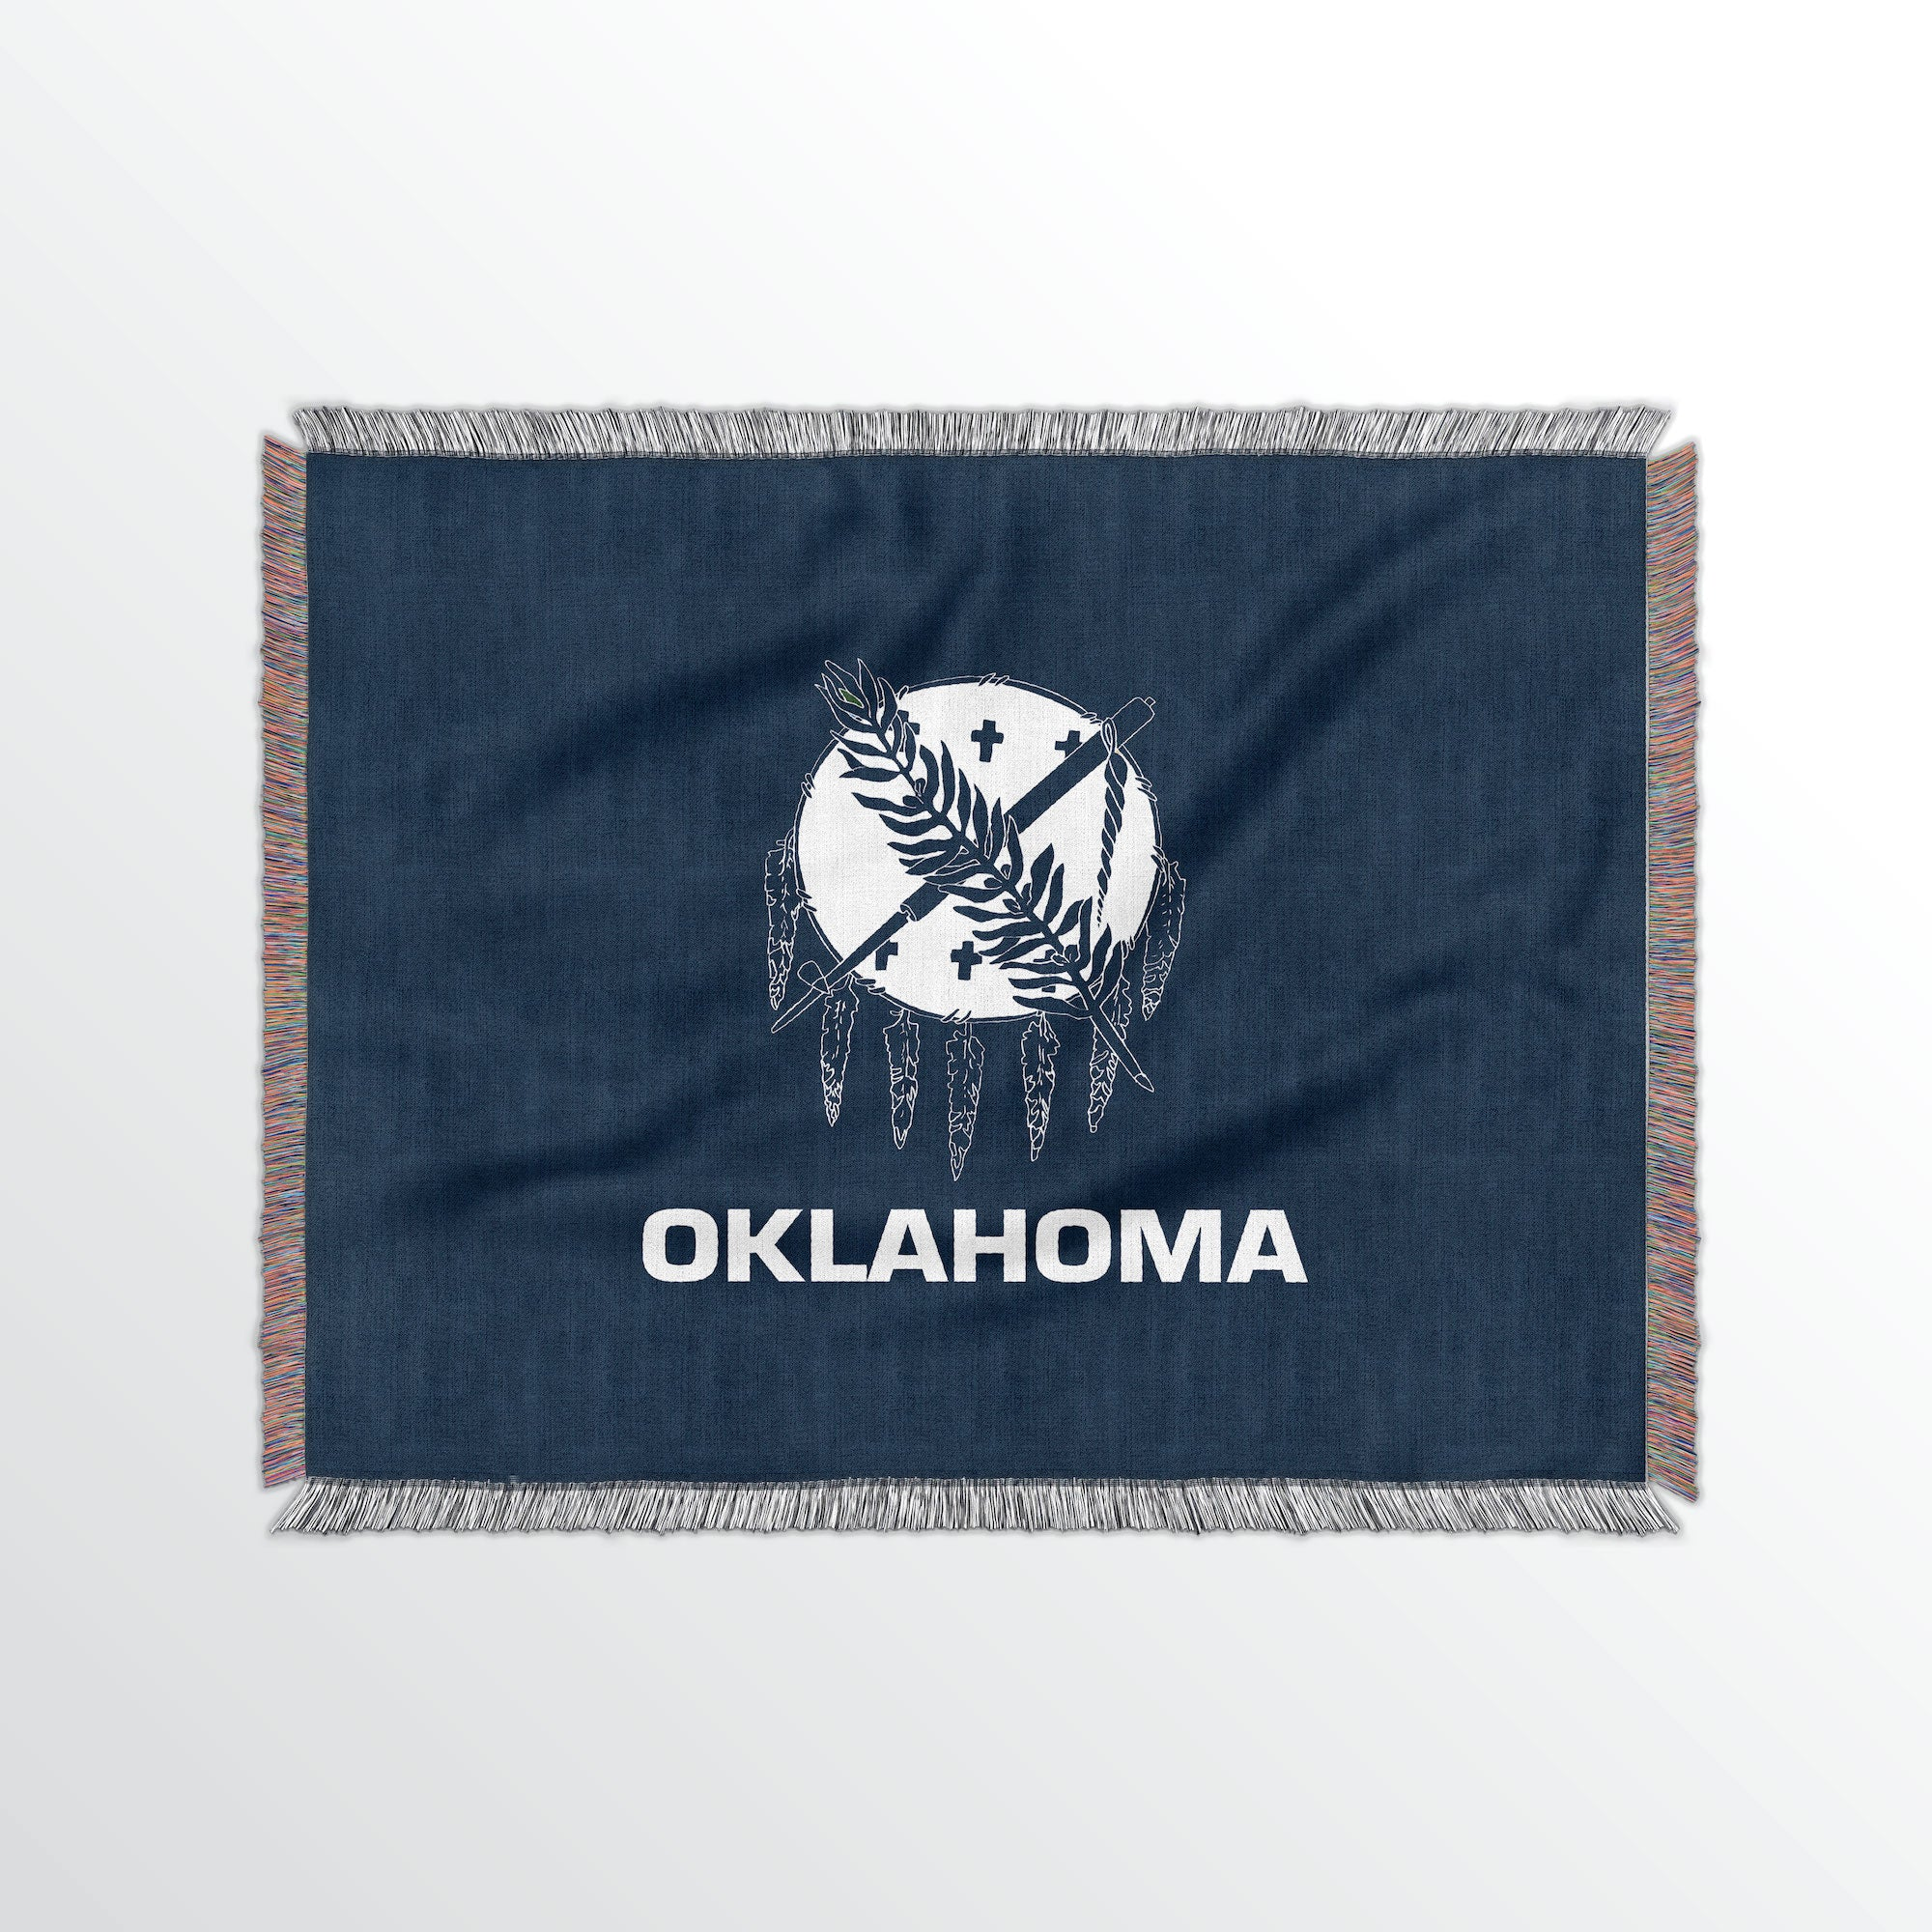 Oklahoma State Woven Cotton Blanet - Point Two Design